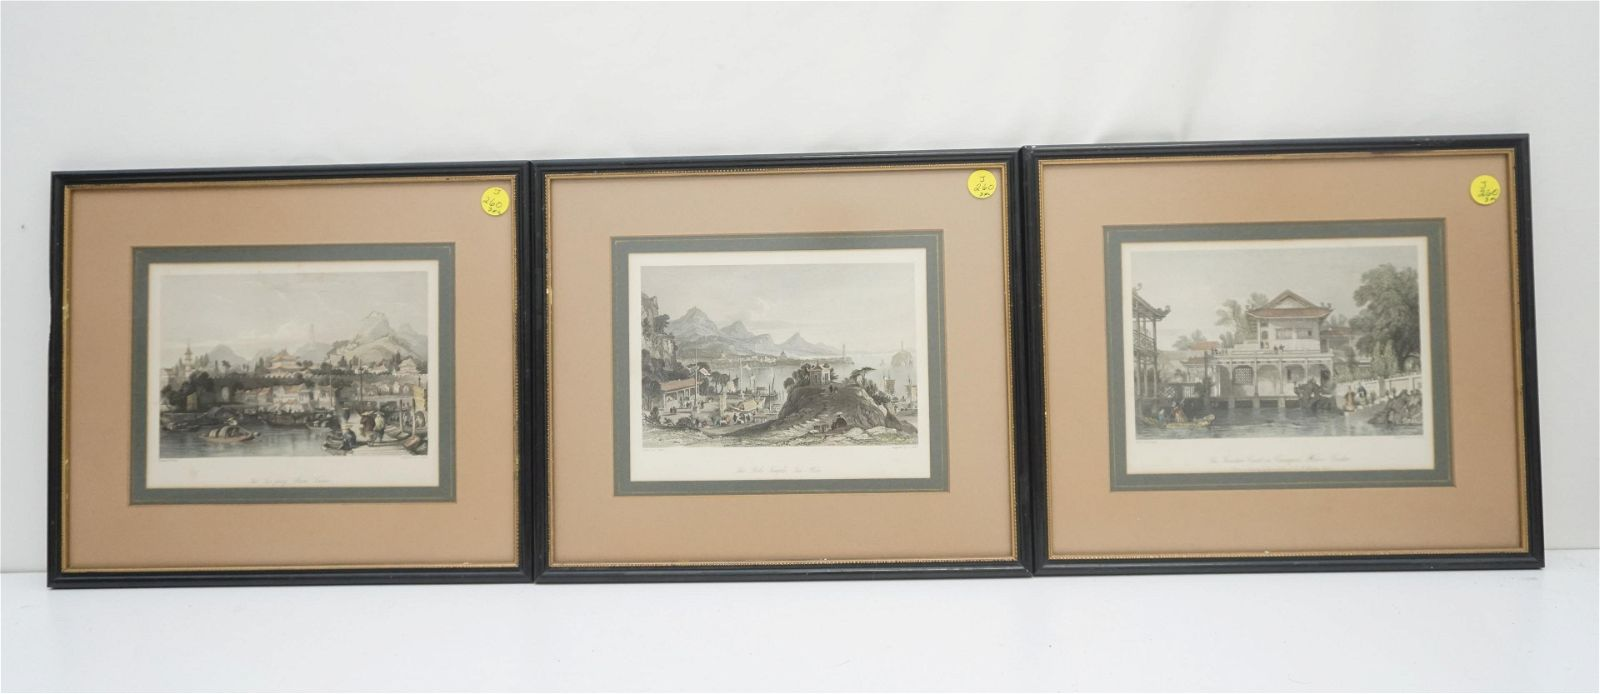 3 FRAMED 1845 COLOR ENGRAVINGS CHINA TRADE